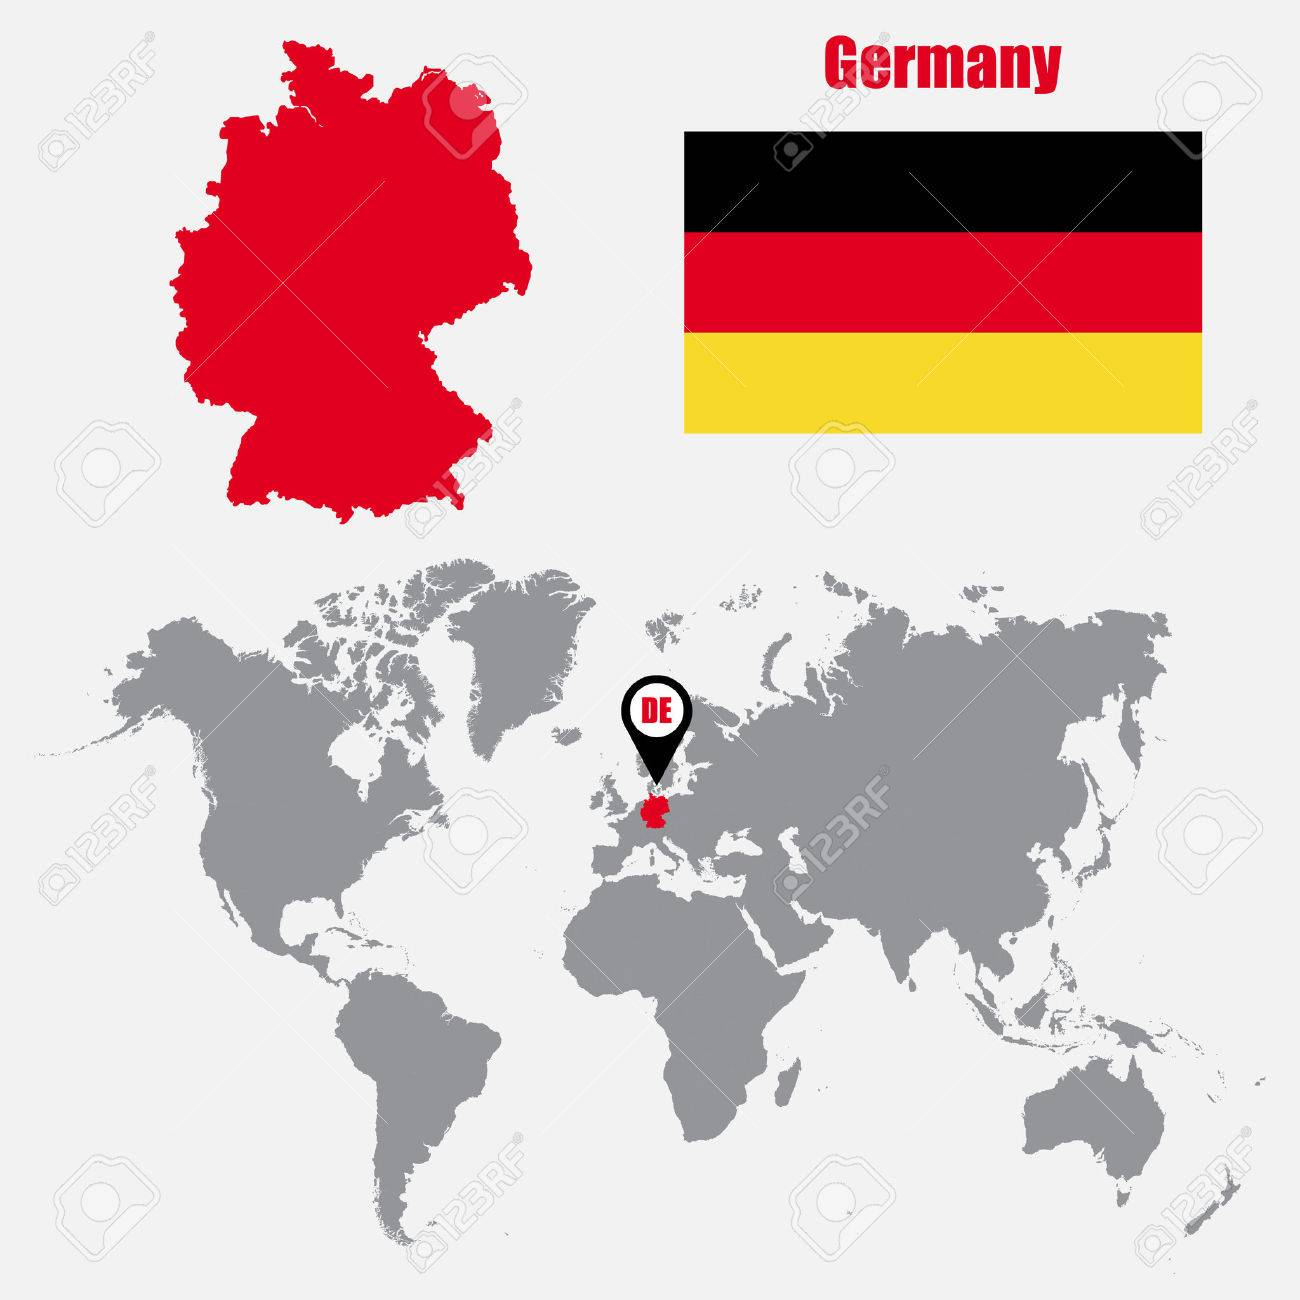 Germany Map On A World Map With Flag And Map Pointer Vector - World map germany